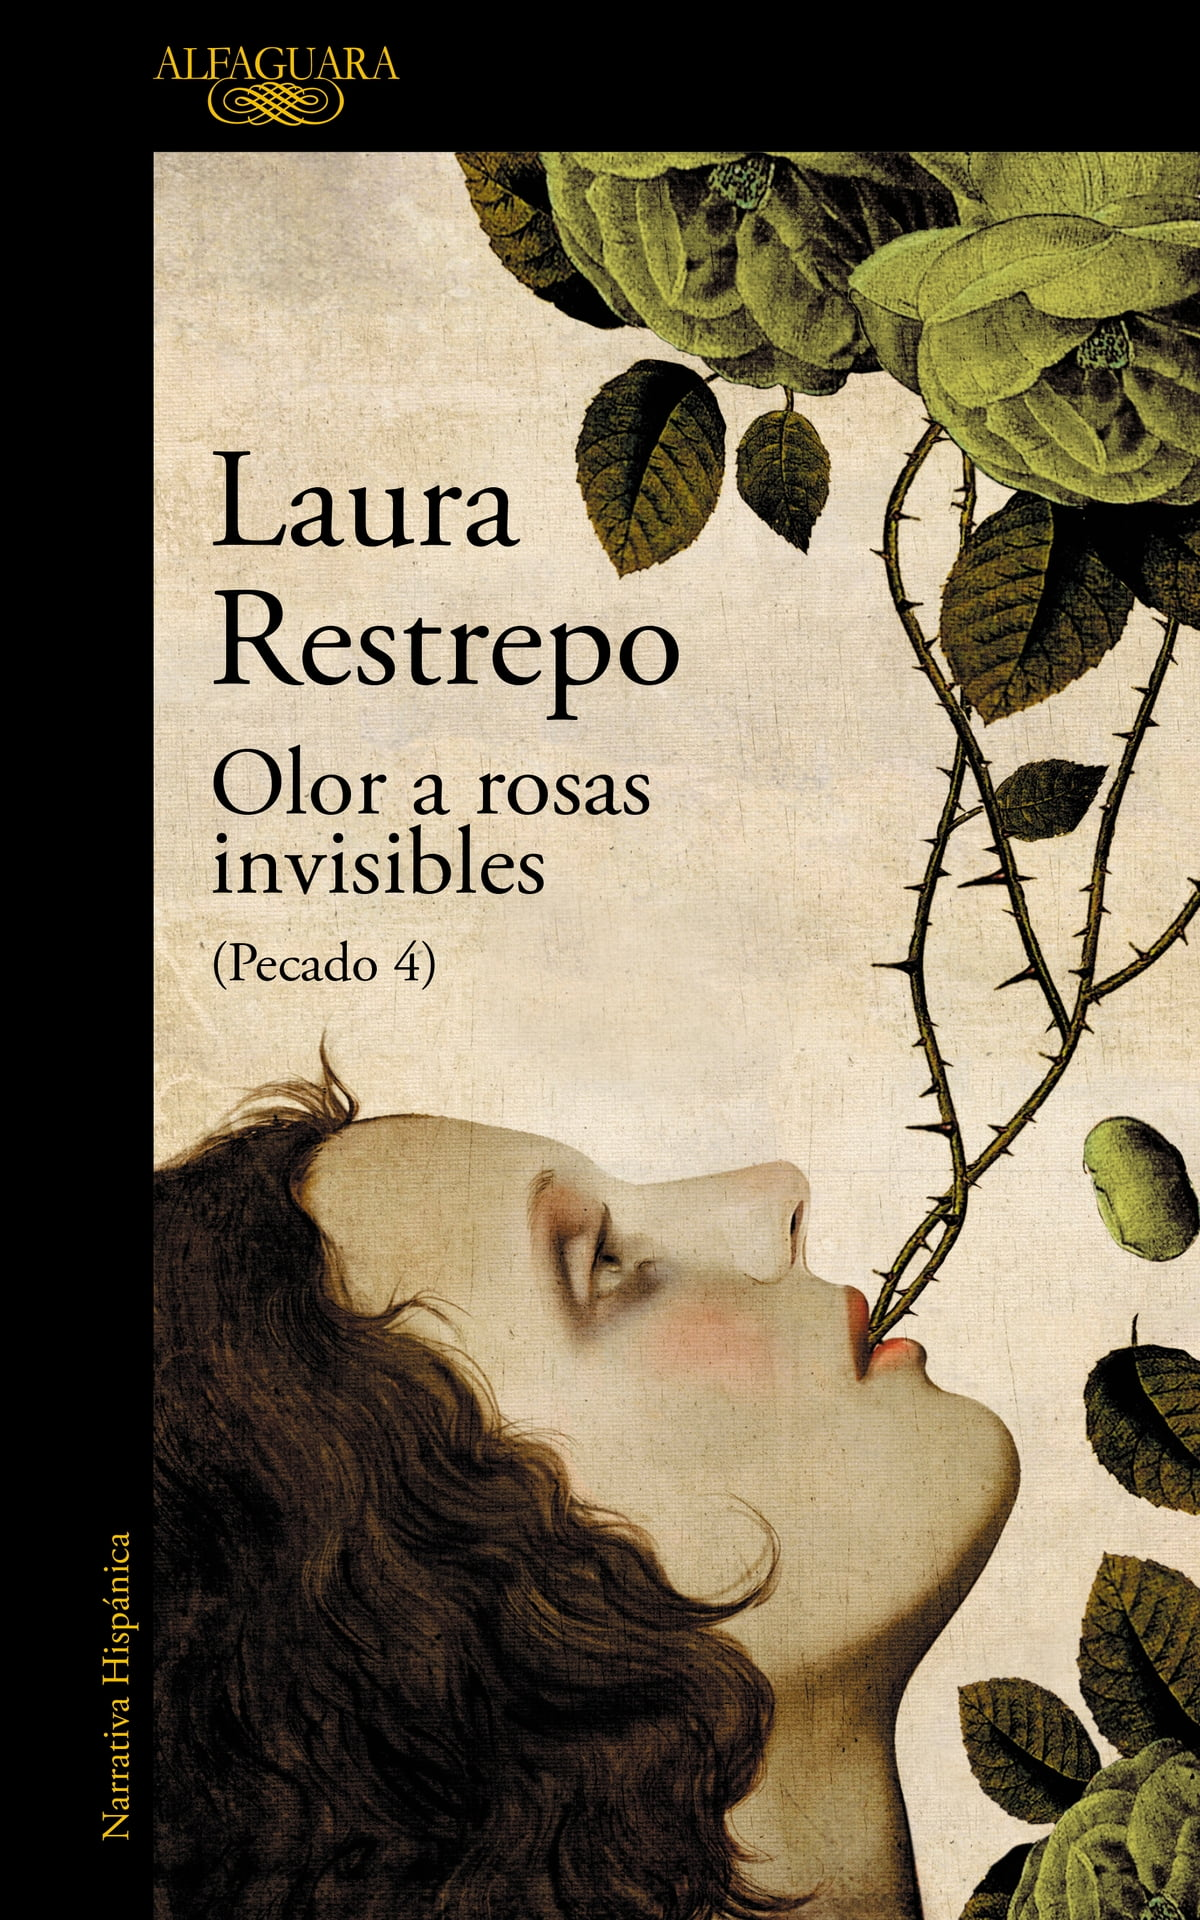 Libros De Fantasia Para Adultos Olor A Rosas Invisibles Pecado 4 Ebook Por Laura